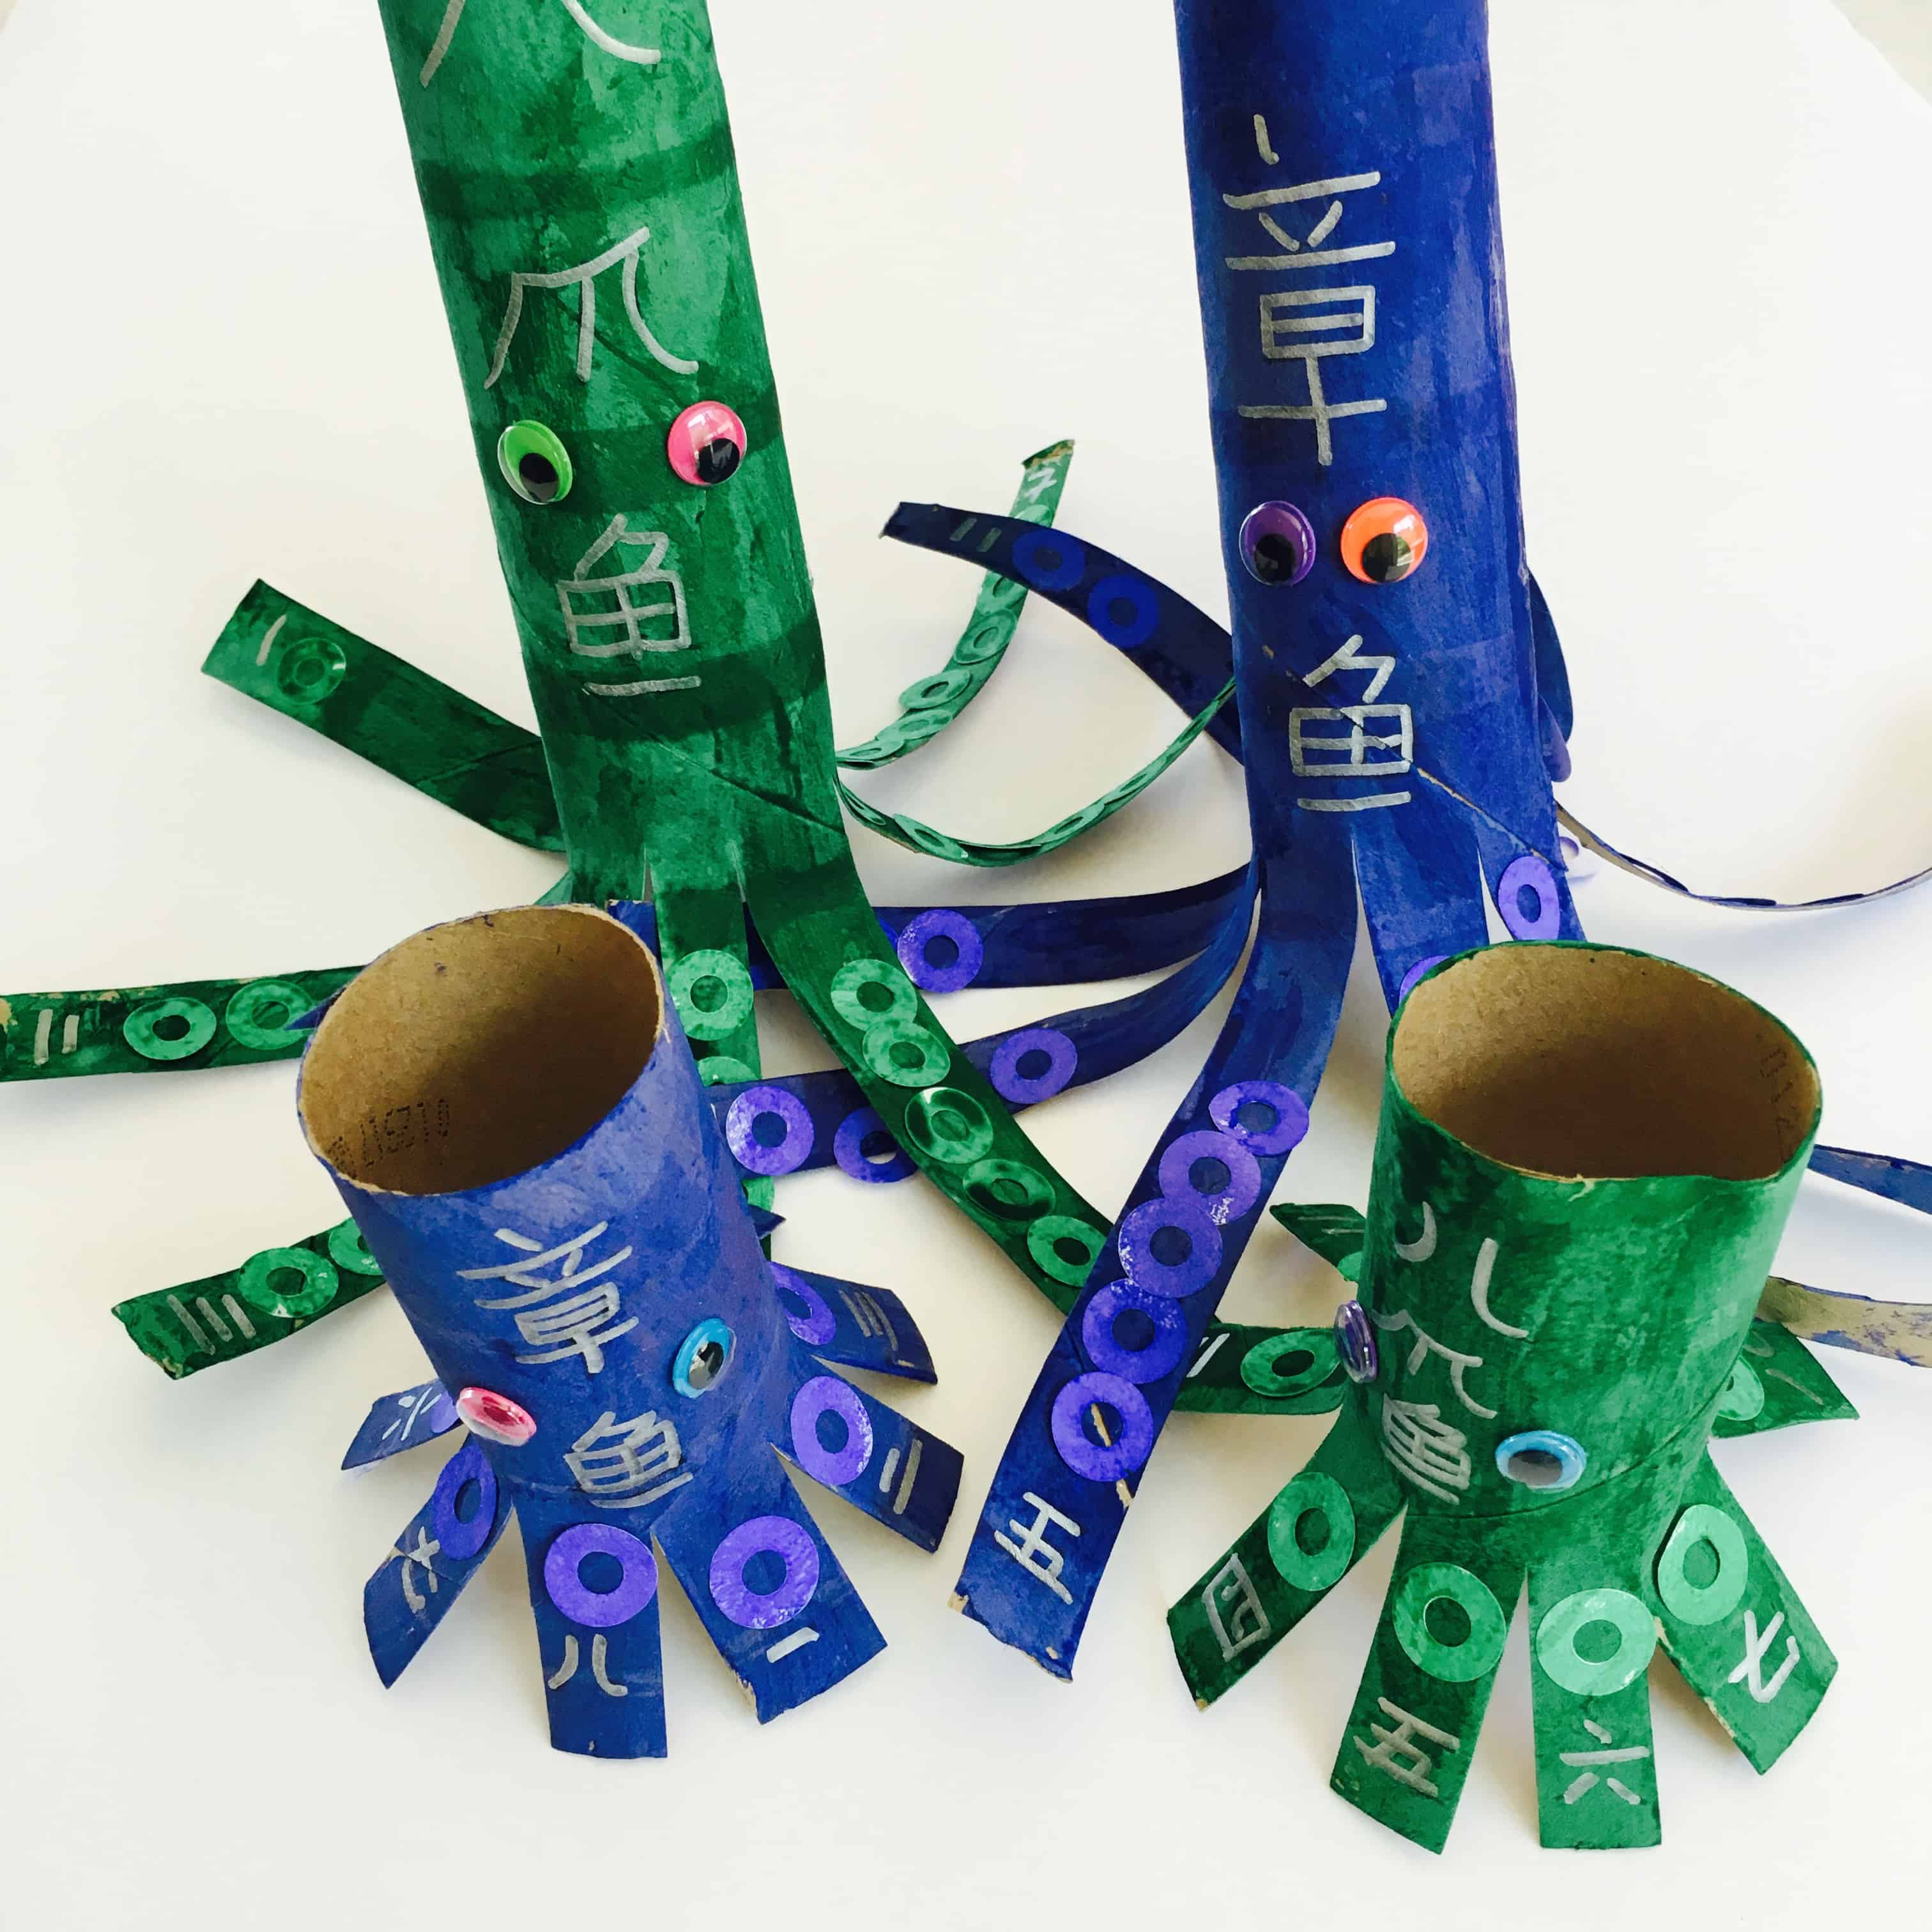 Cardboard Roll Octopus: A Chinese Counting Activity